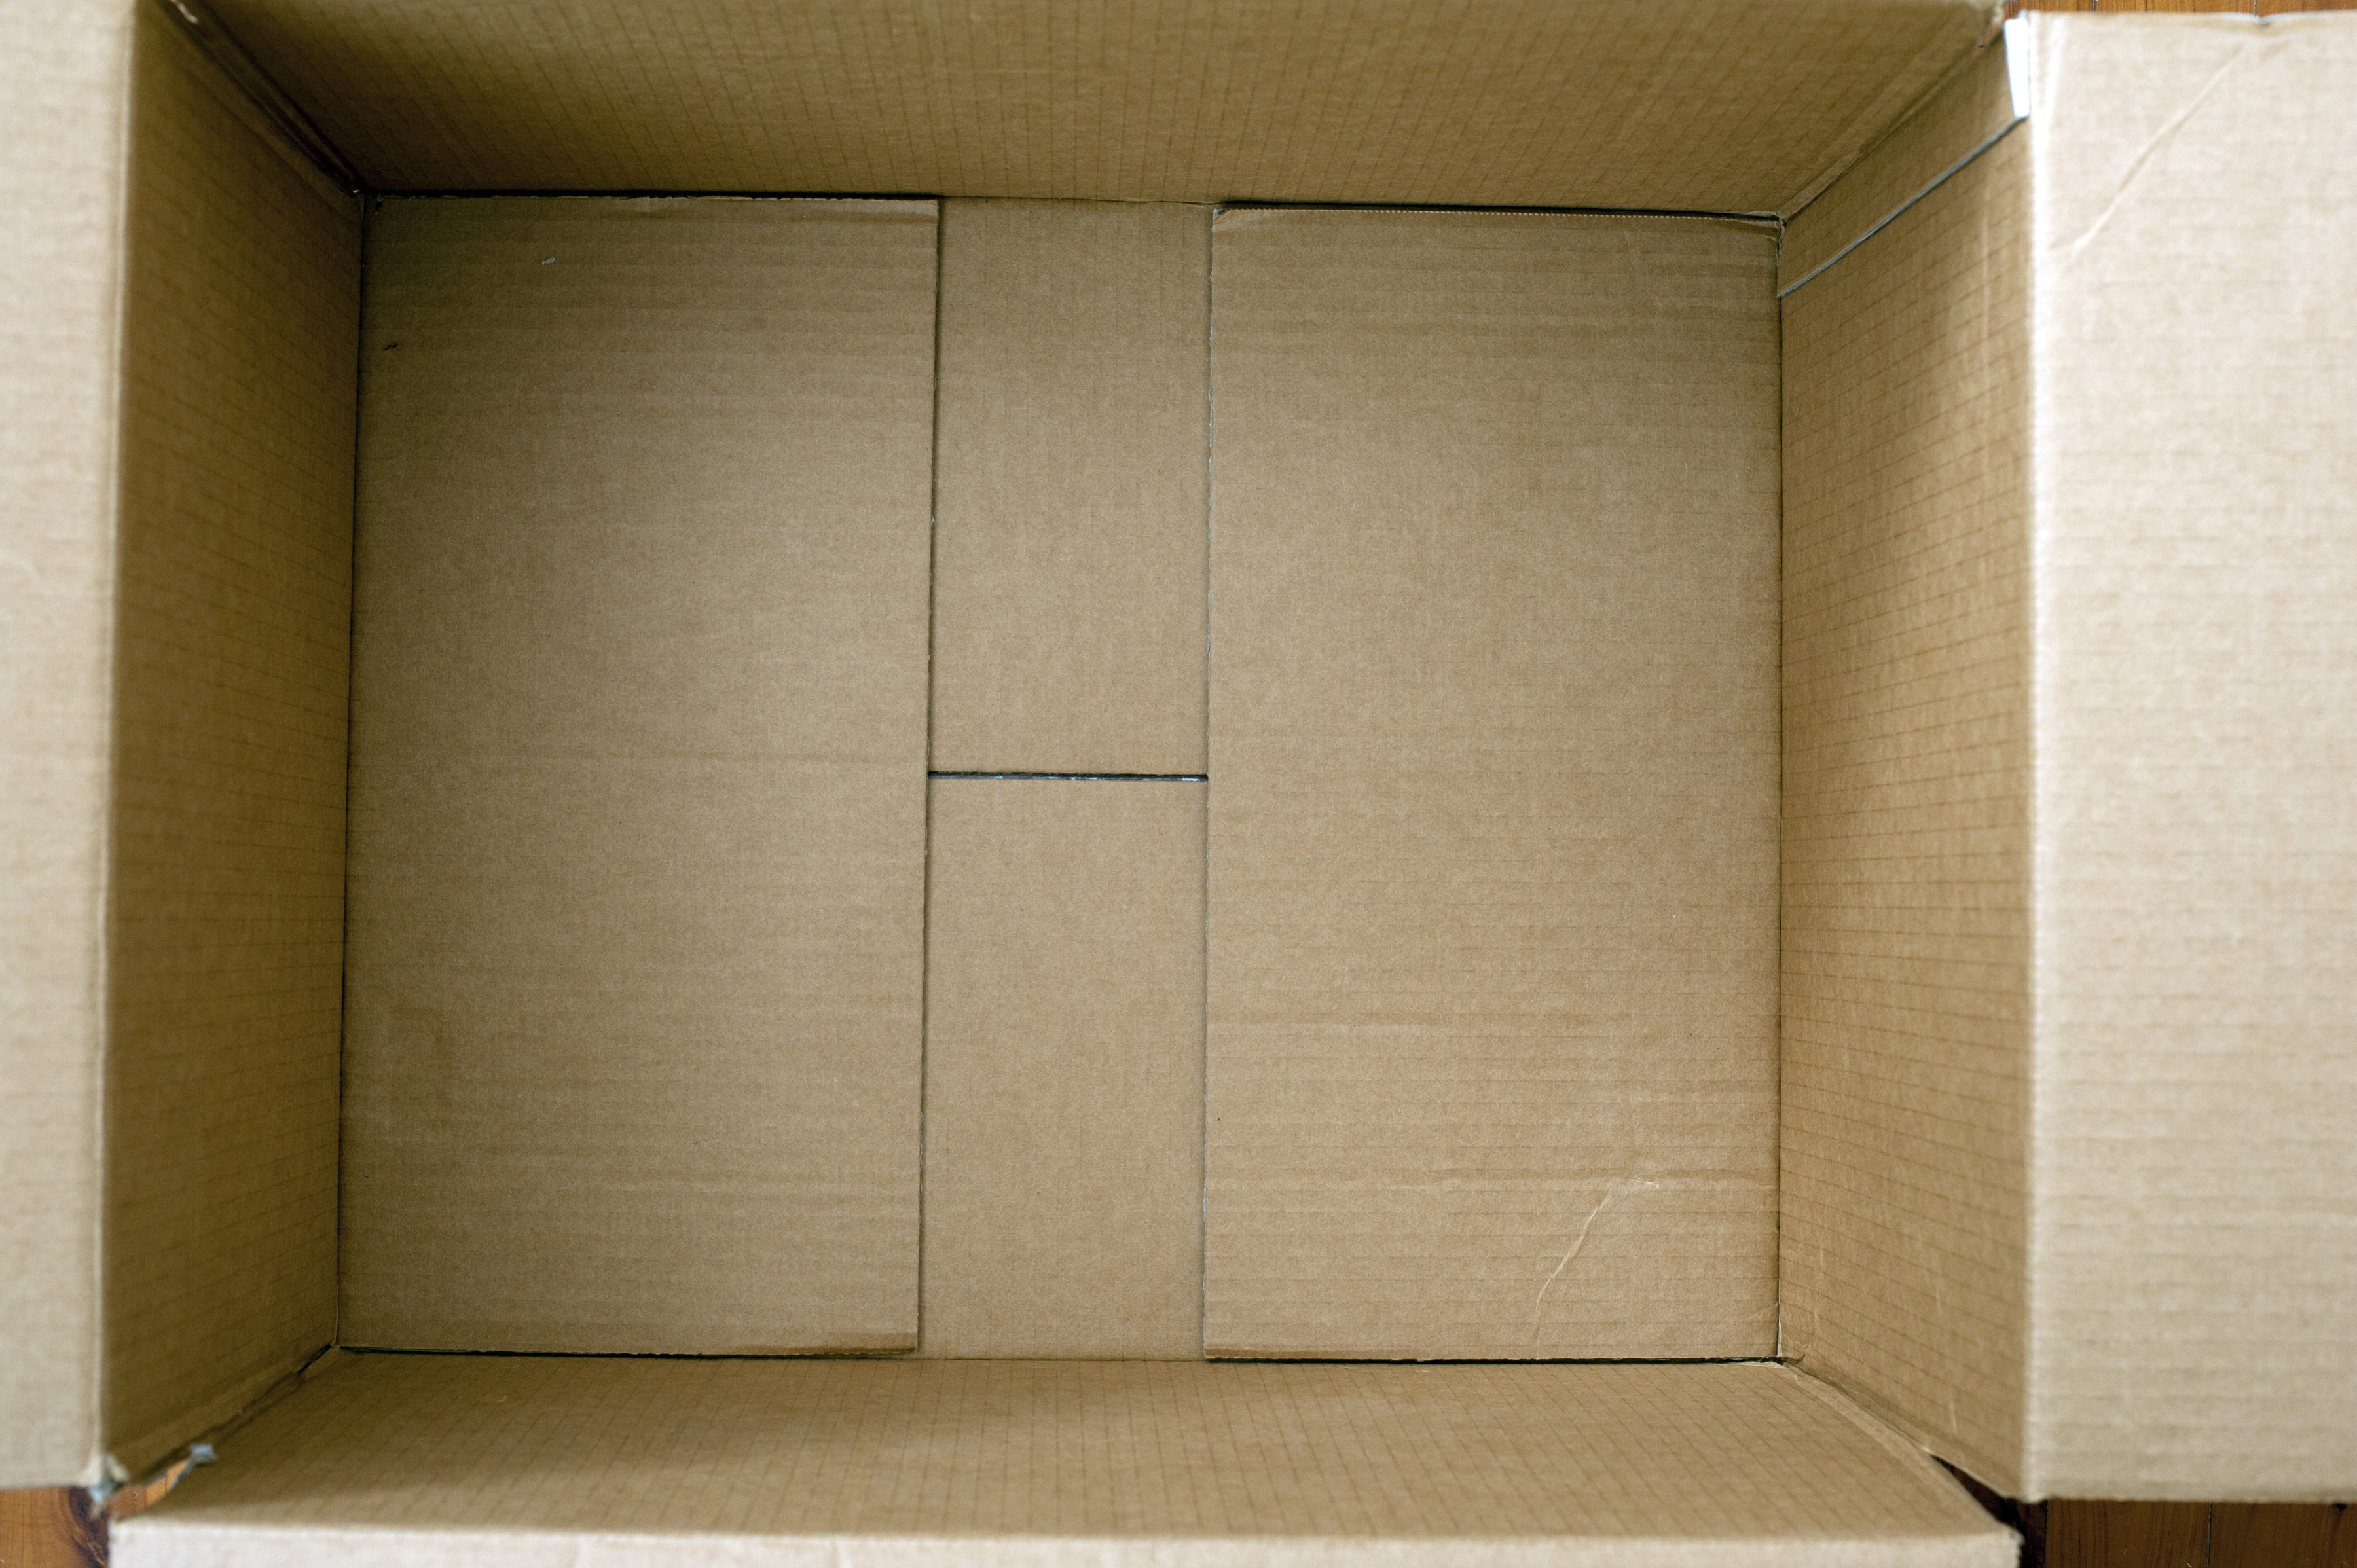 Inside an empty brown cardboard box for packing with an overhead close up view looking down inside the open flaps